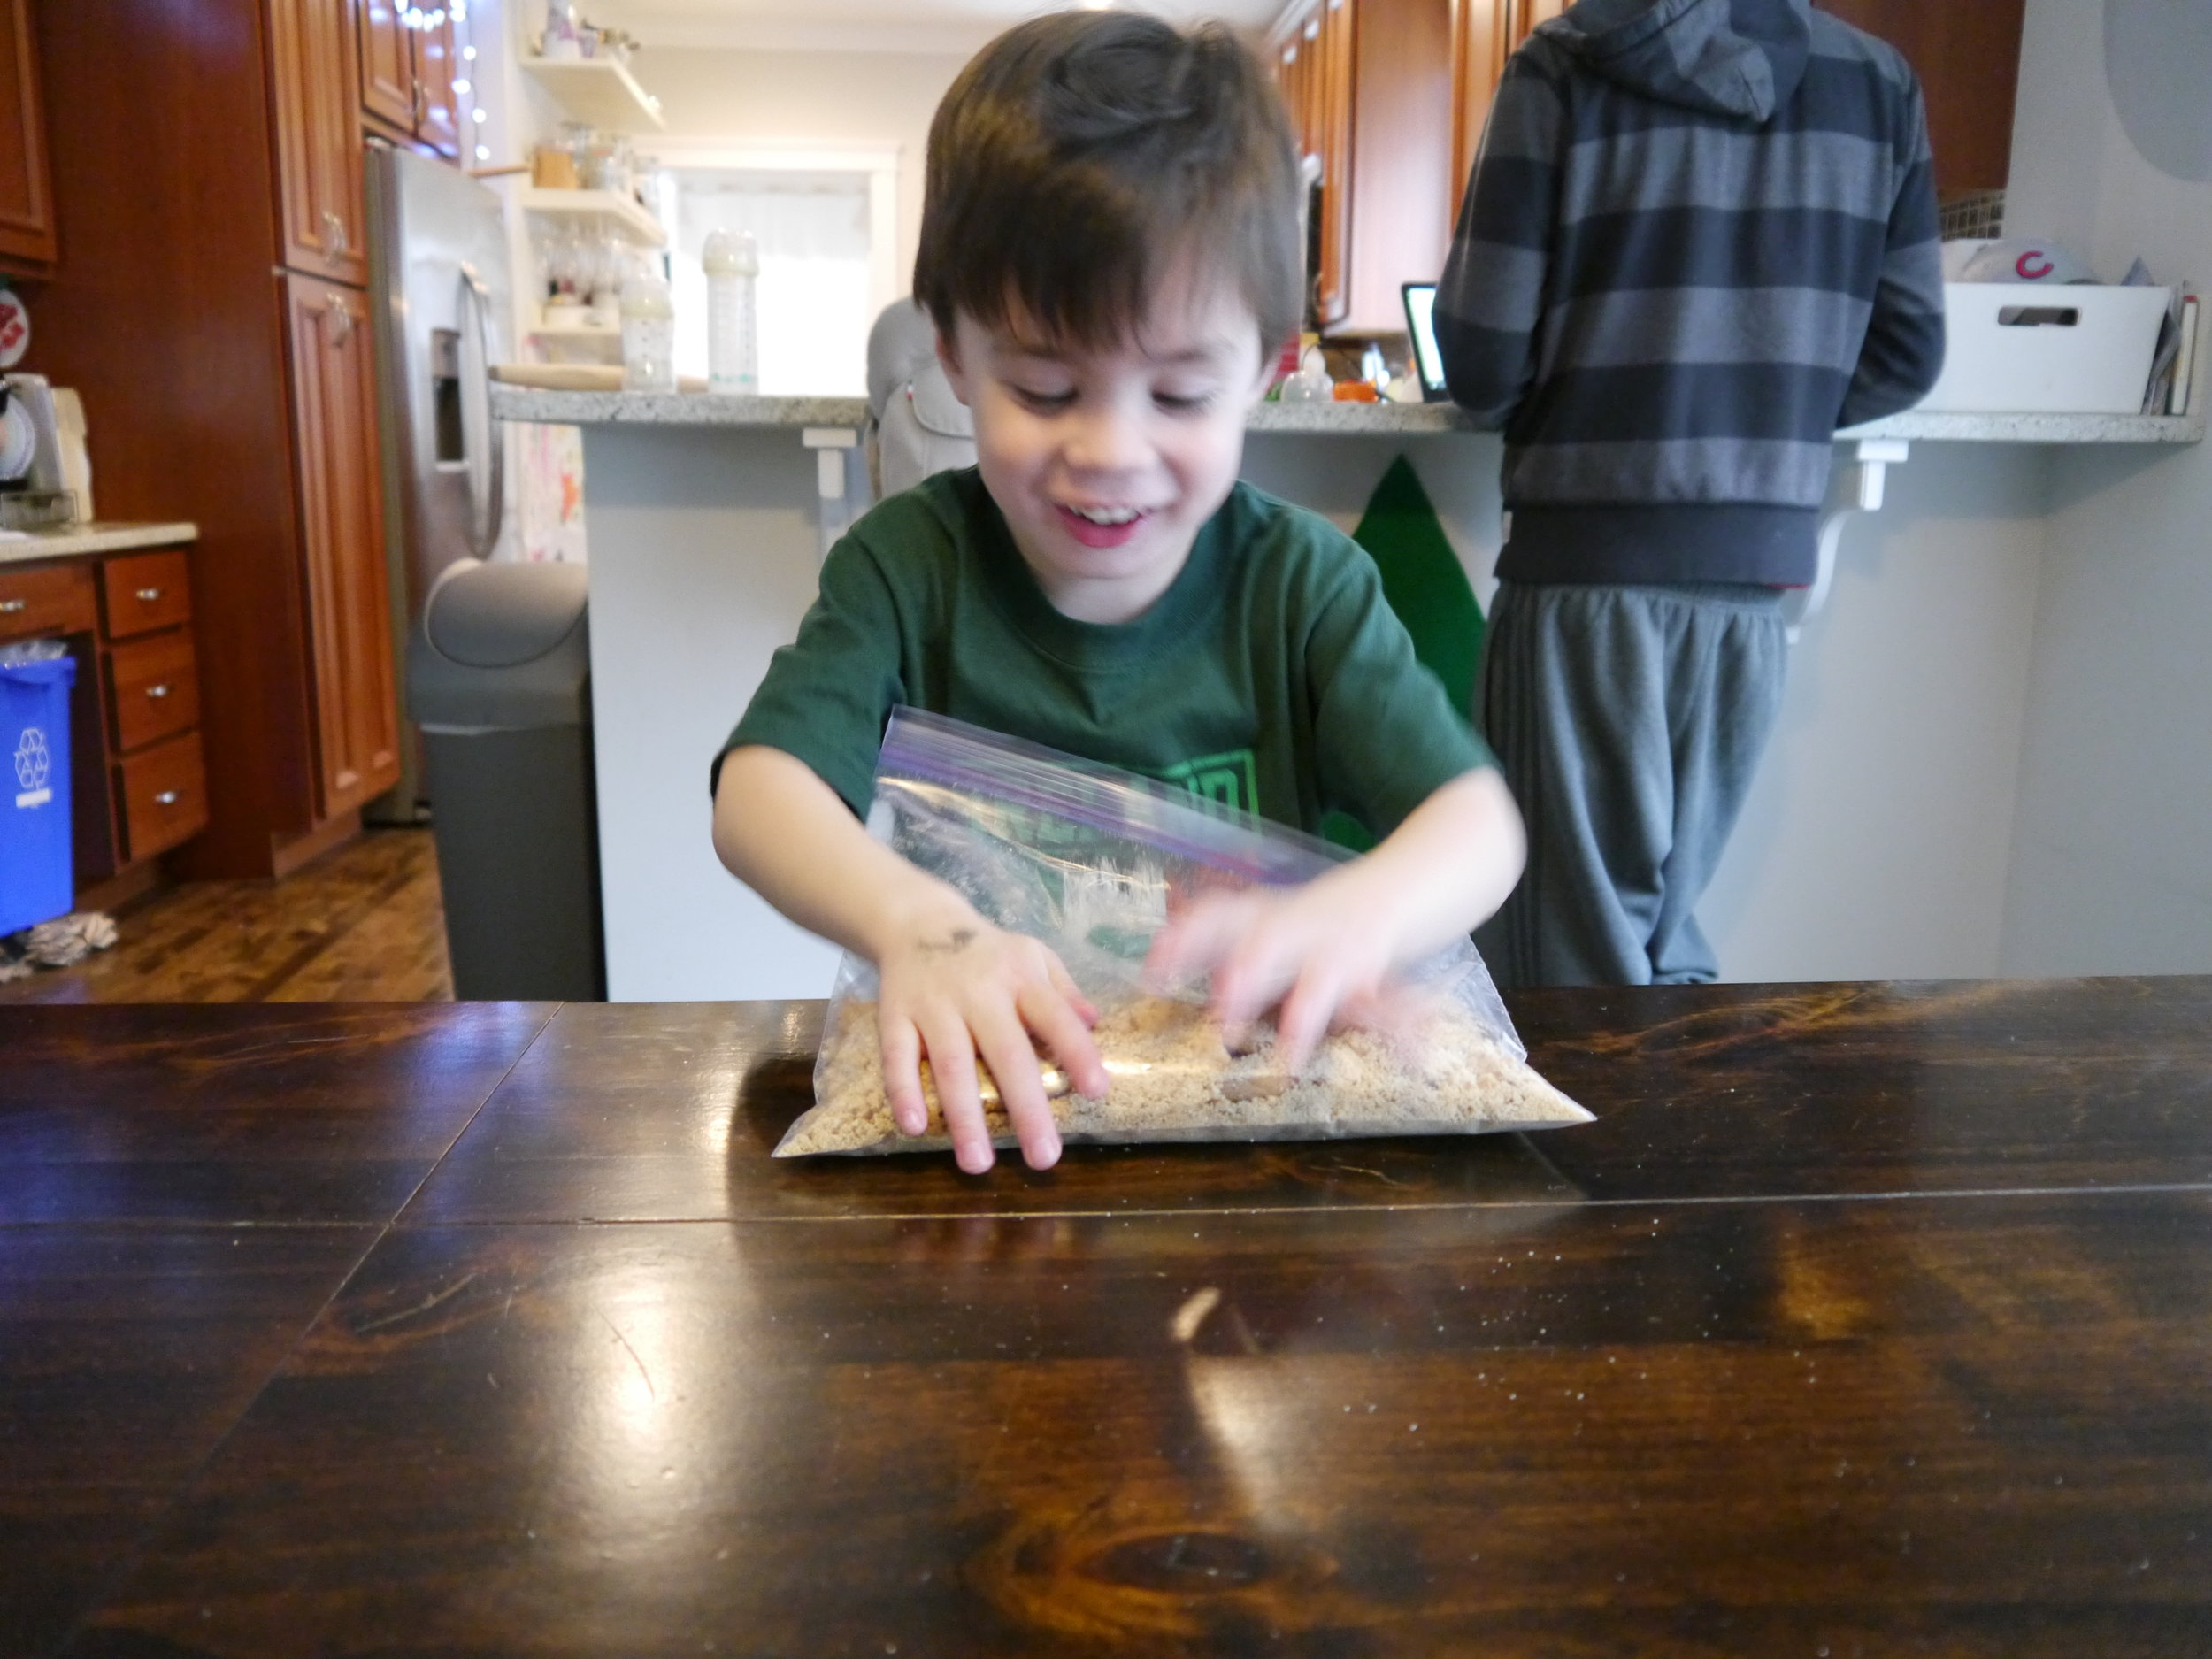 He flung the rolling pin aside and got in there with his hands.